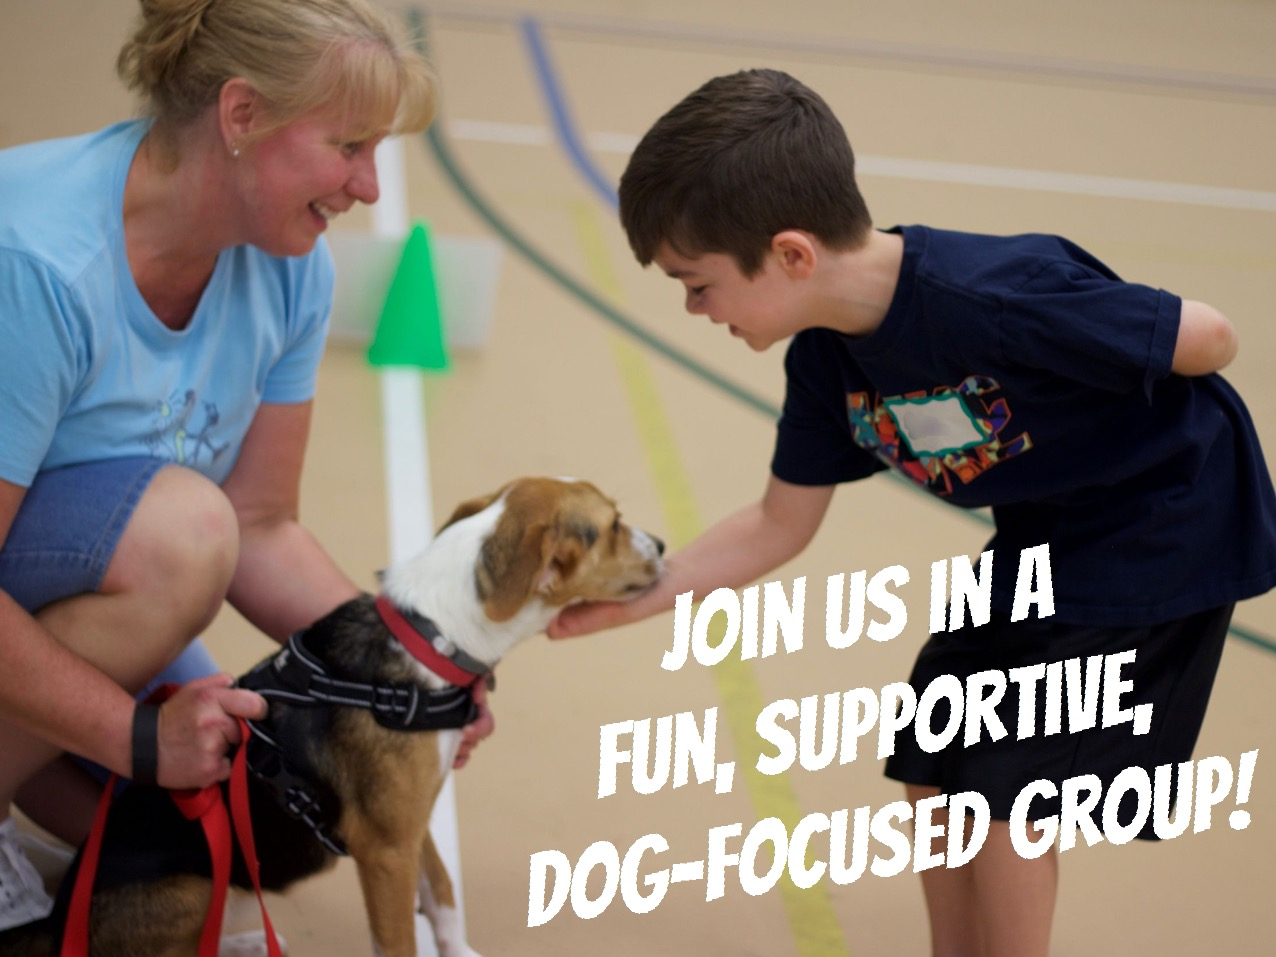 Join us in a fun, dog-focused group!